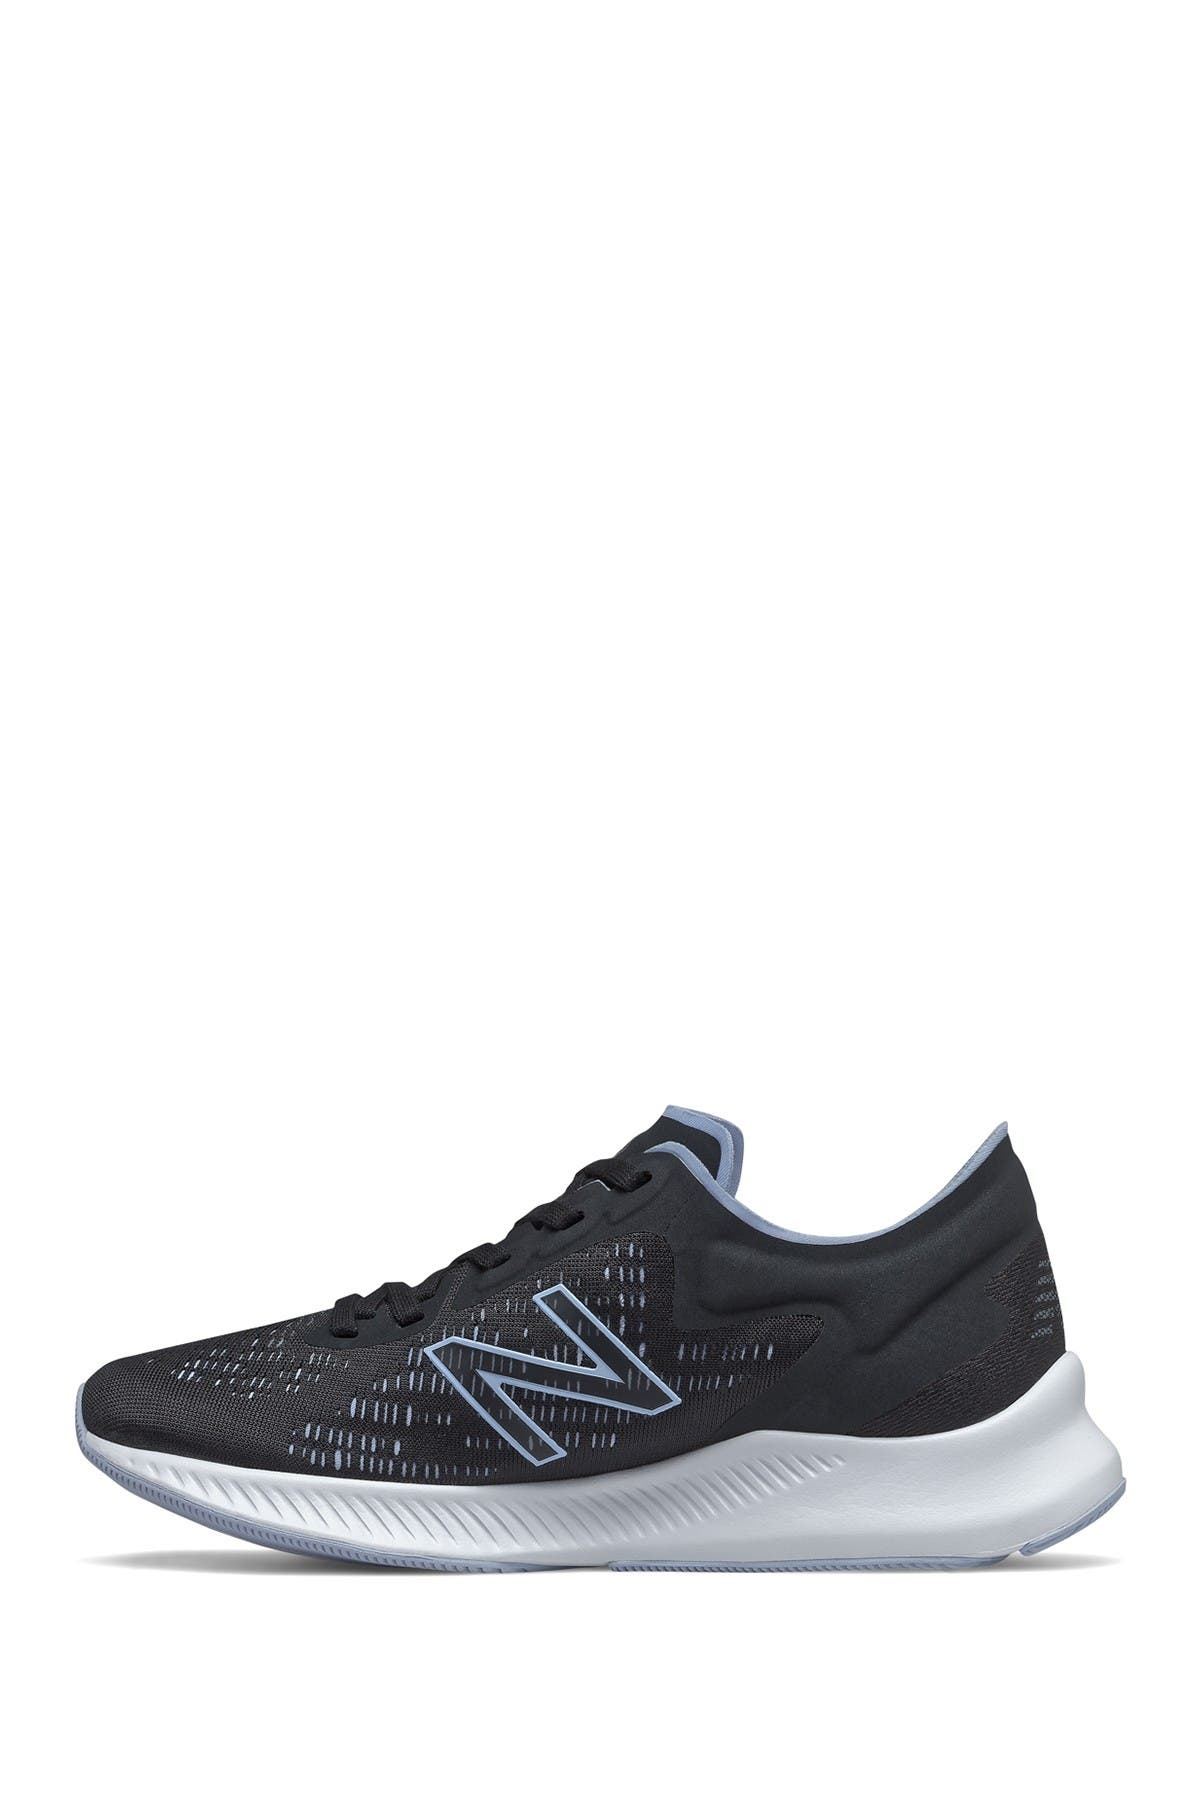 Image of New Balance Pesu Athletic Sneaker - Wide Width Available